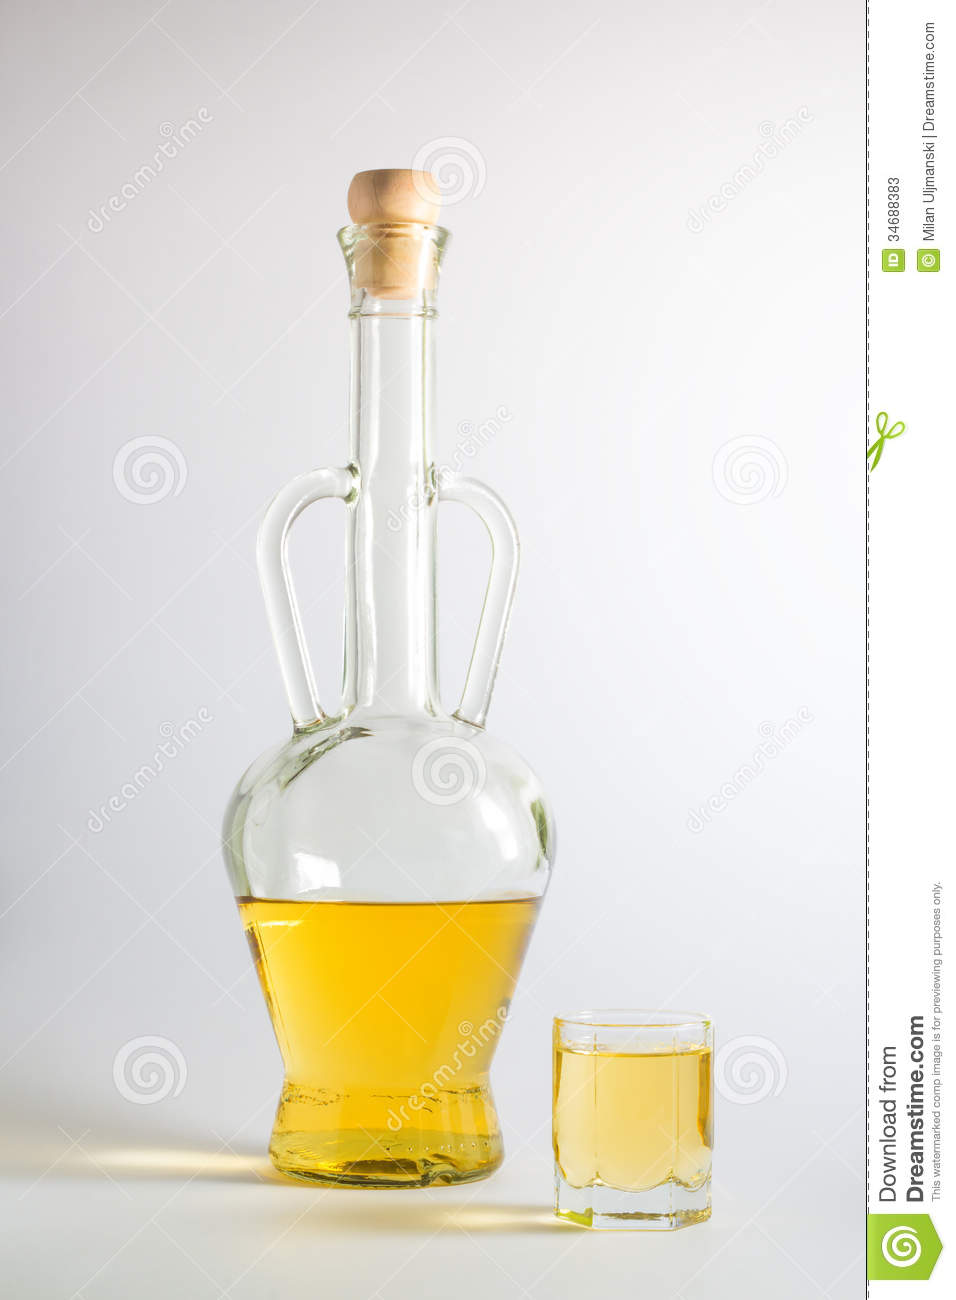 Bottle of Plum Brandy with a glass